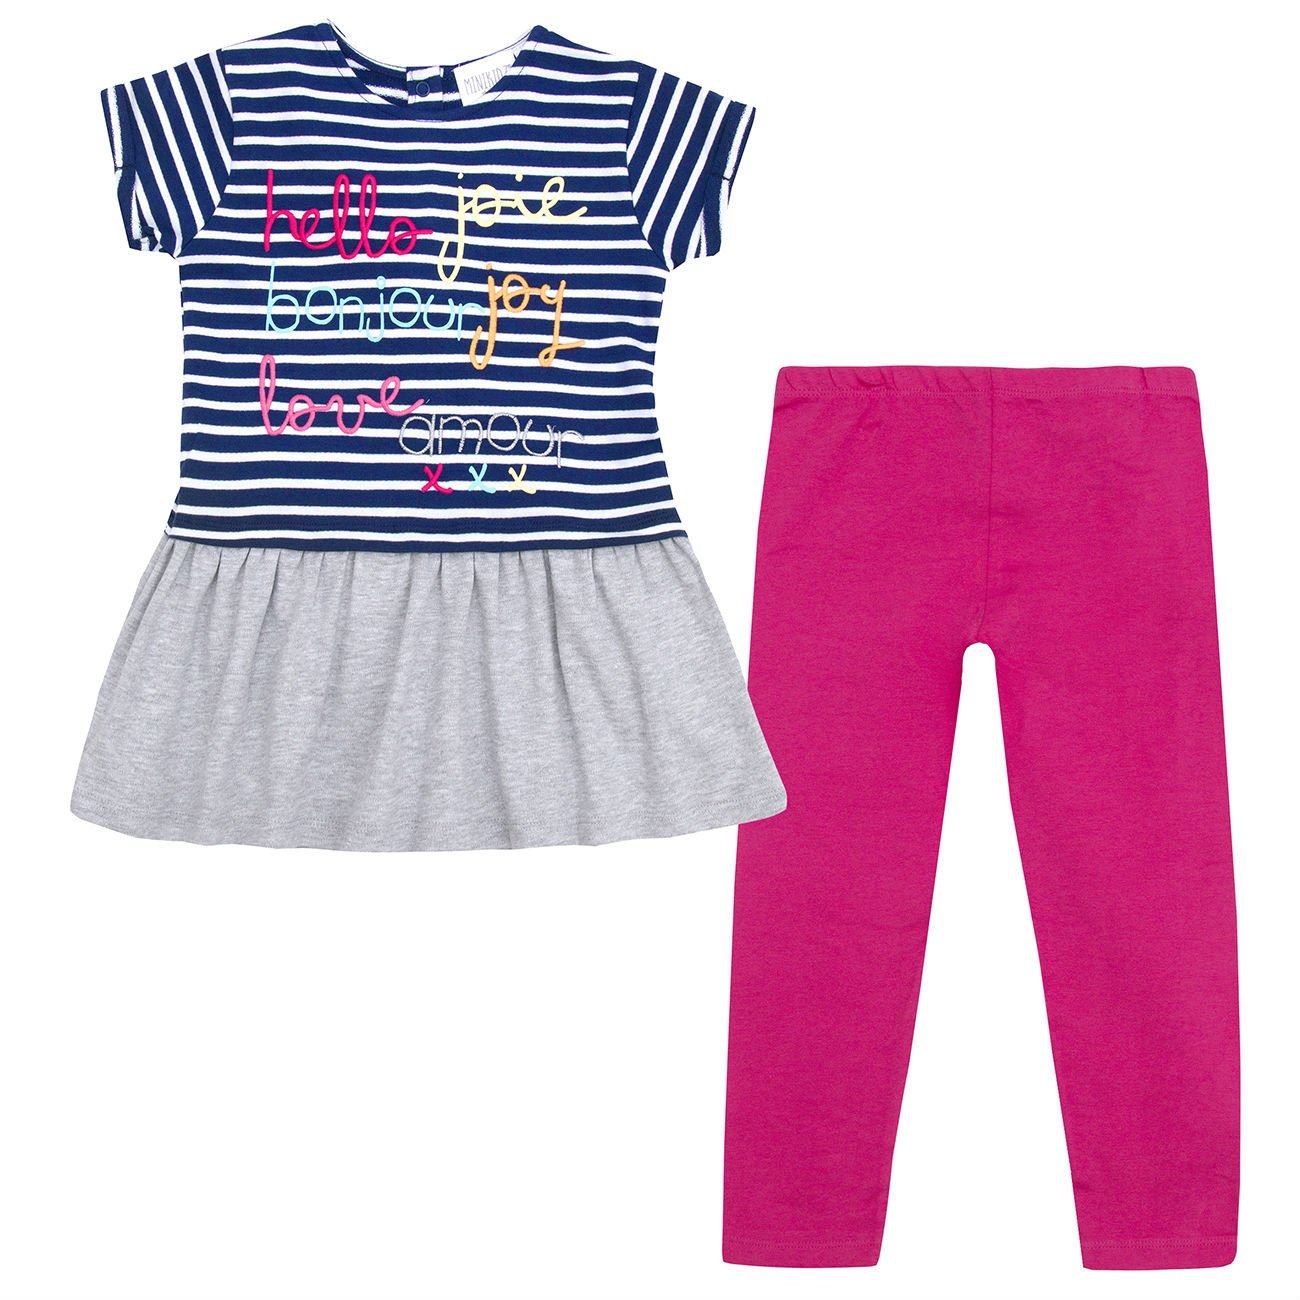 Minikidz Infant Girls Tunic Pants Outfit Ages 2 Up To Legging Cotton Rich 4pc 8 Years Casual Fashion Clothing